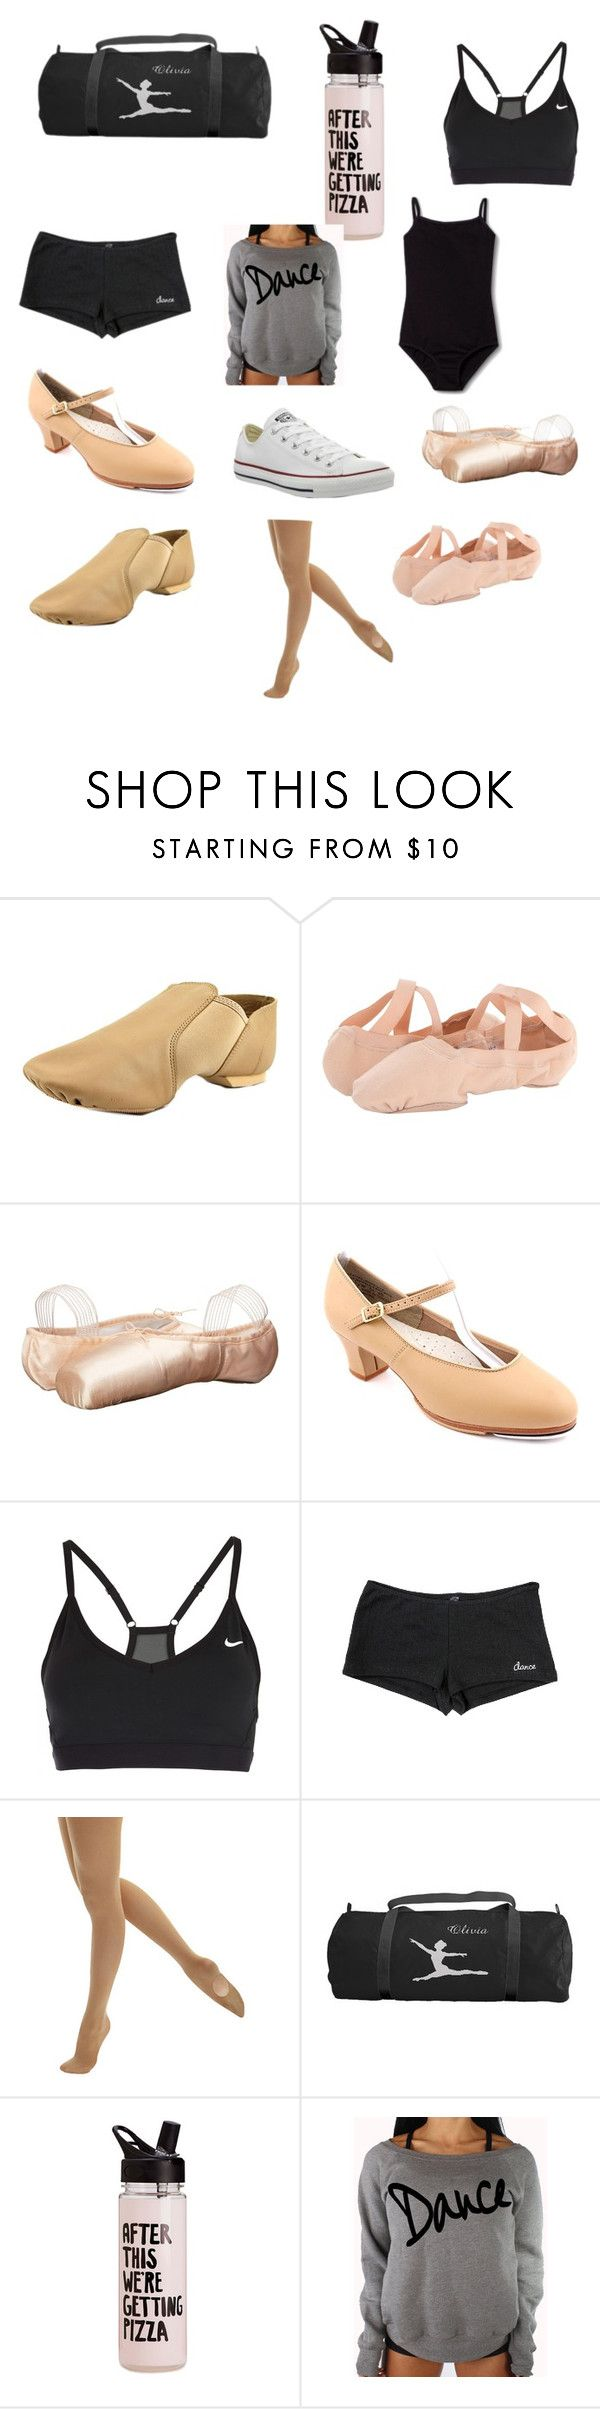 """""""Dance Bag Essentials"""" by montrosewilson ❤ liked on Polyvore featuring Capezio, Bloch, Sansha, NIKE, Danshuz and Converse"""